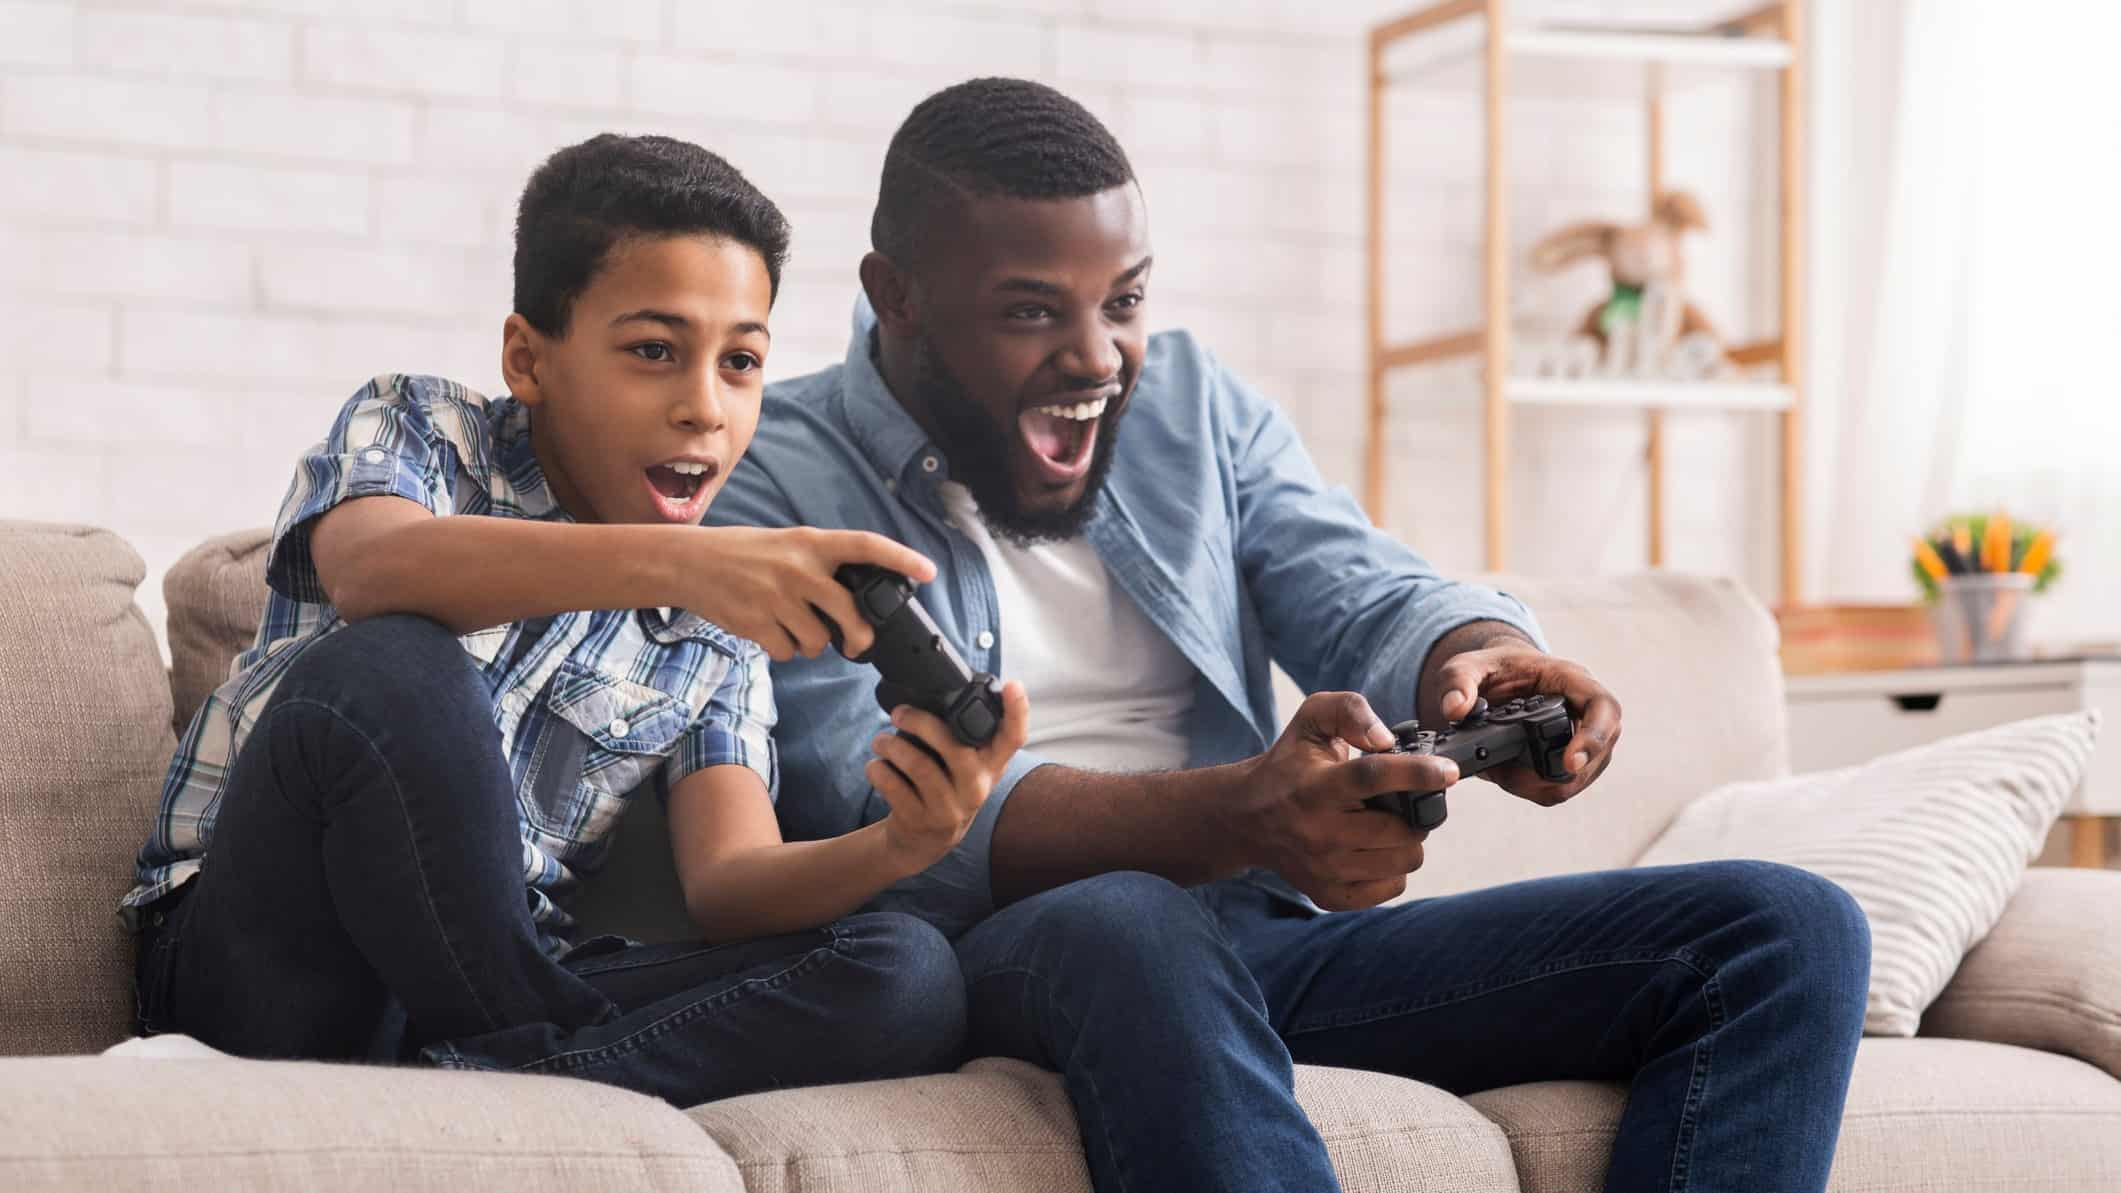 Cheerful Father And Son Competing In Video Games At Home